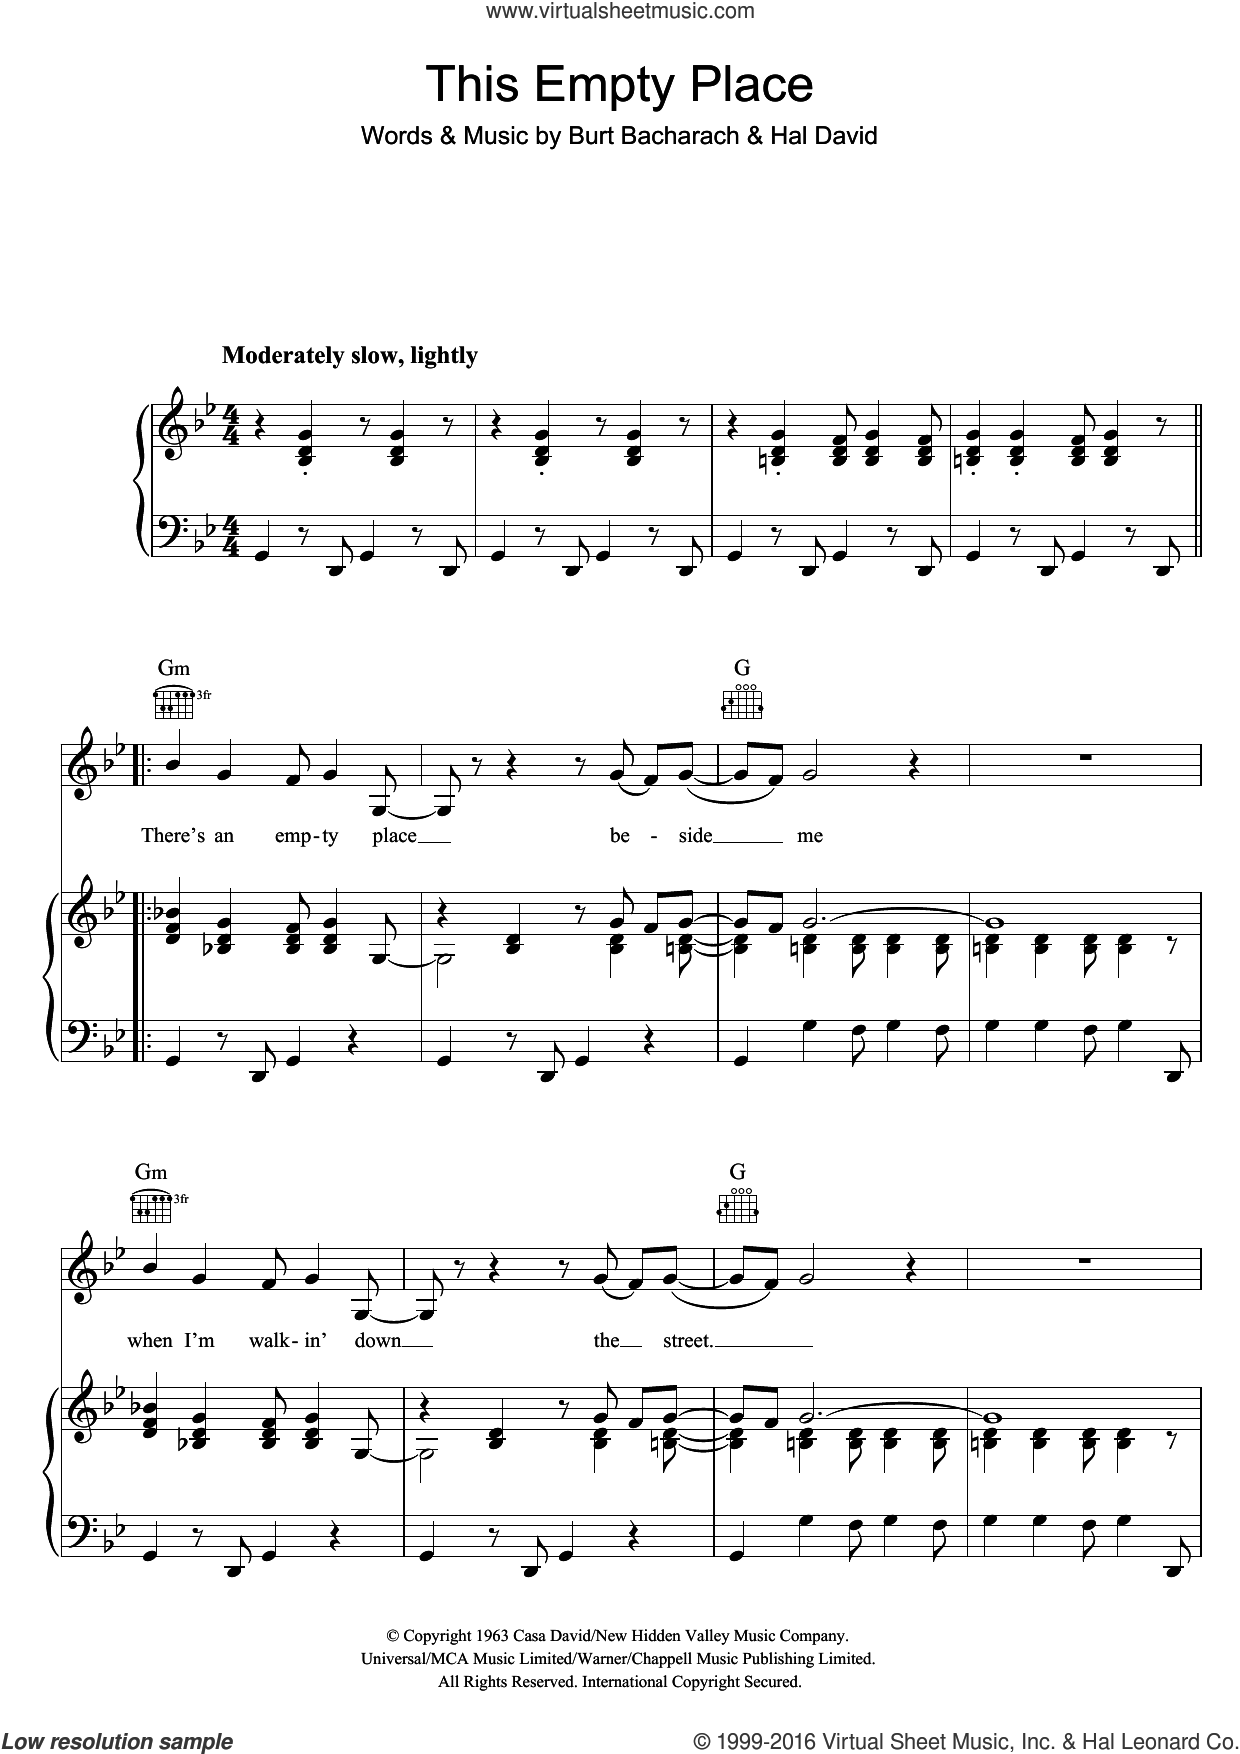 This Empty Place sheet music for voice, piano or guitar by Dionne Warwick, Burt Bacharach and Hal David, intermediate